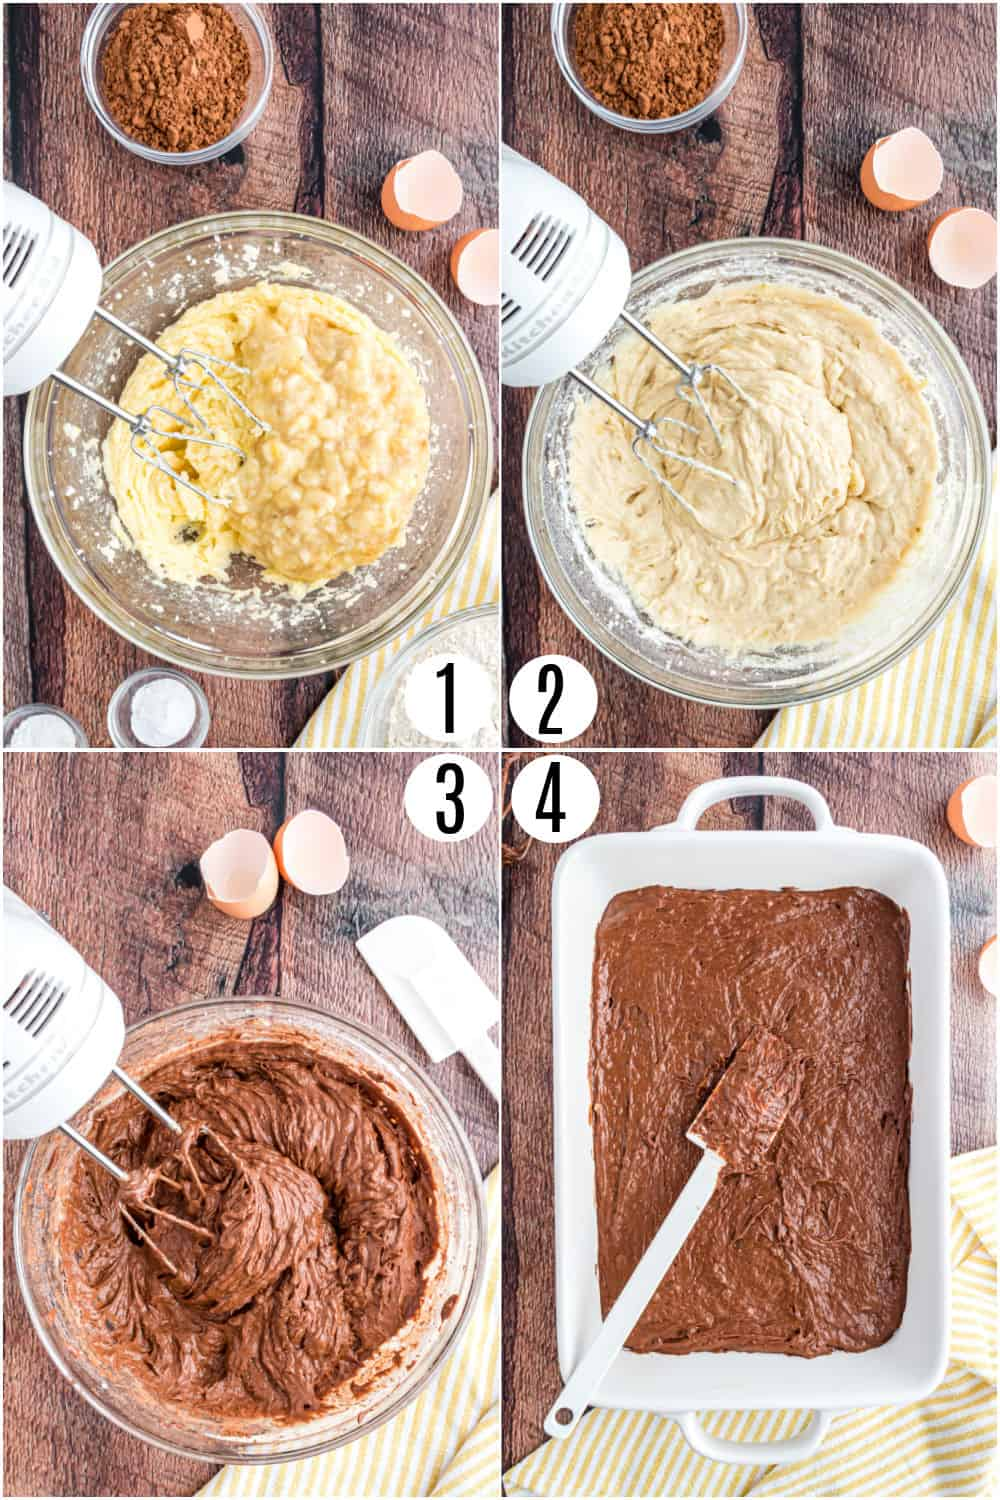 Step by step photos showing how to make chocolate banana cake.